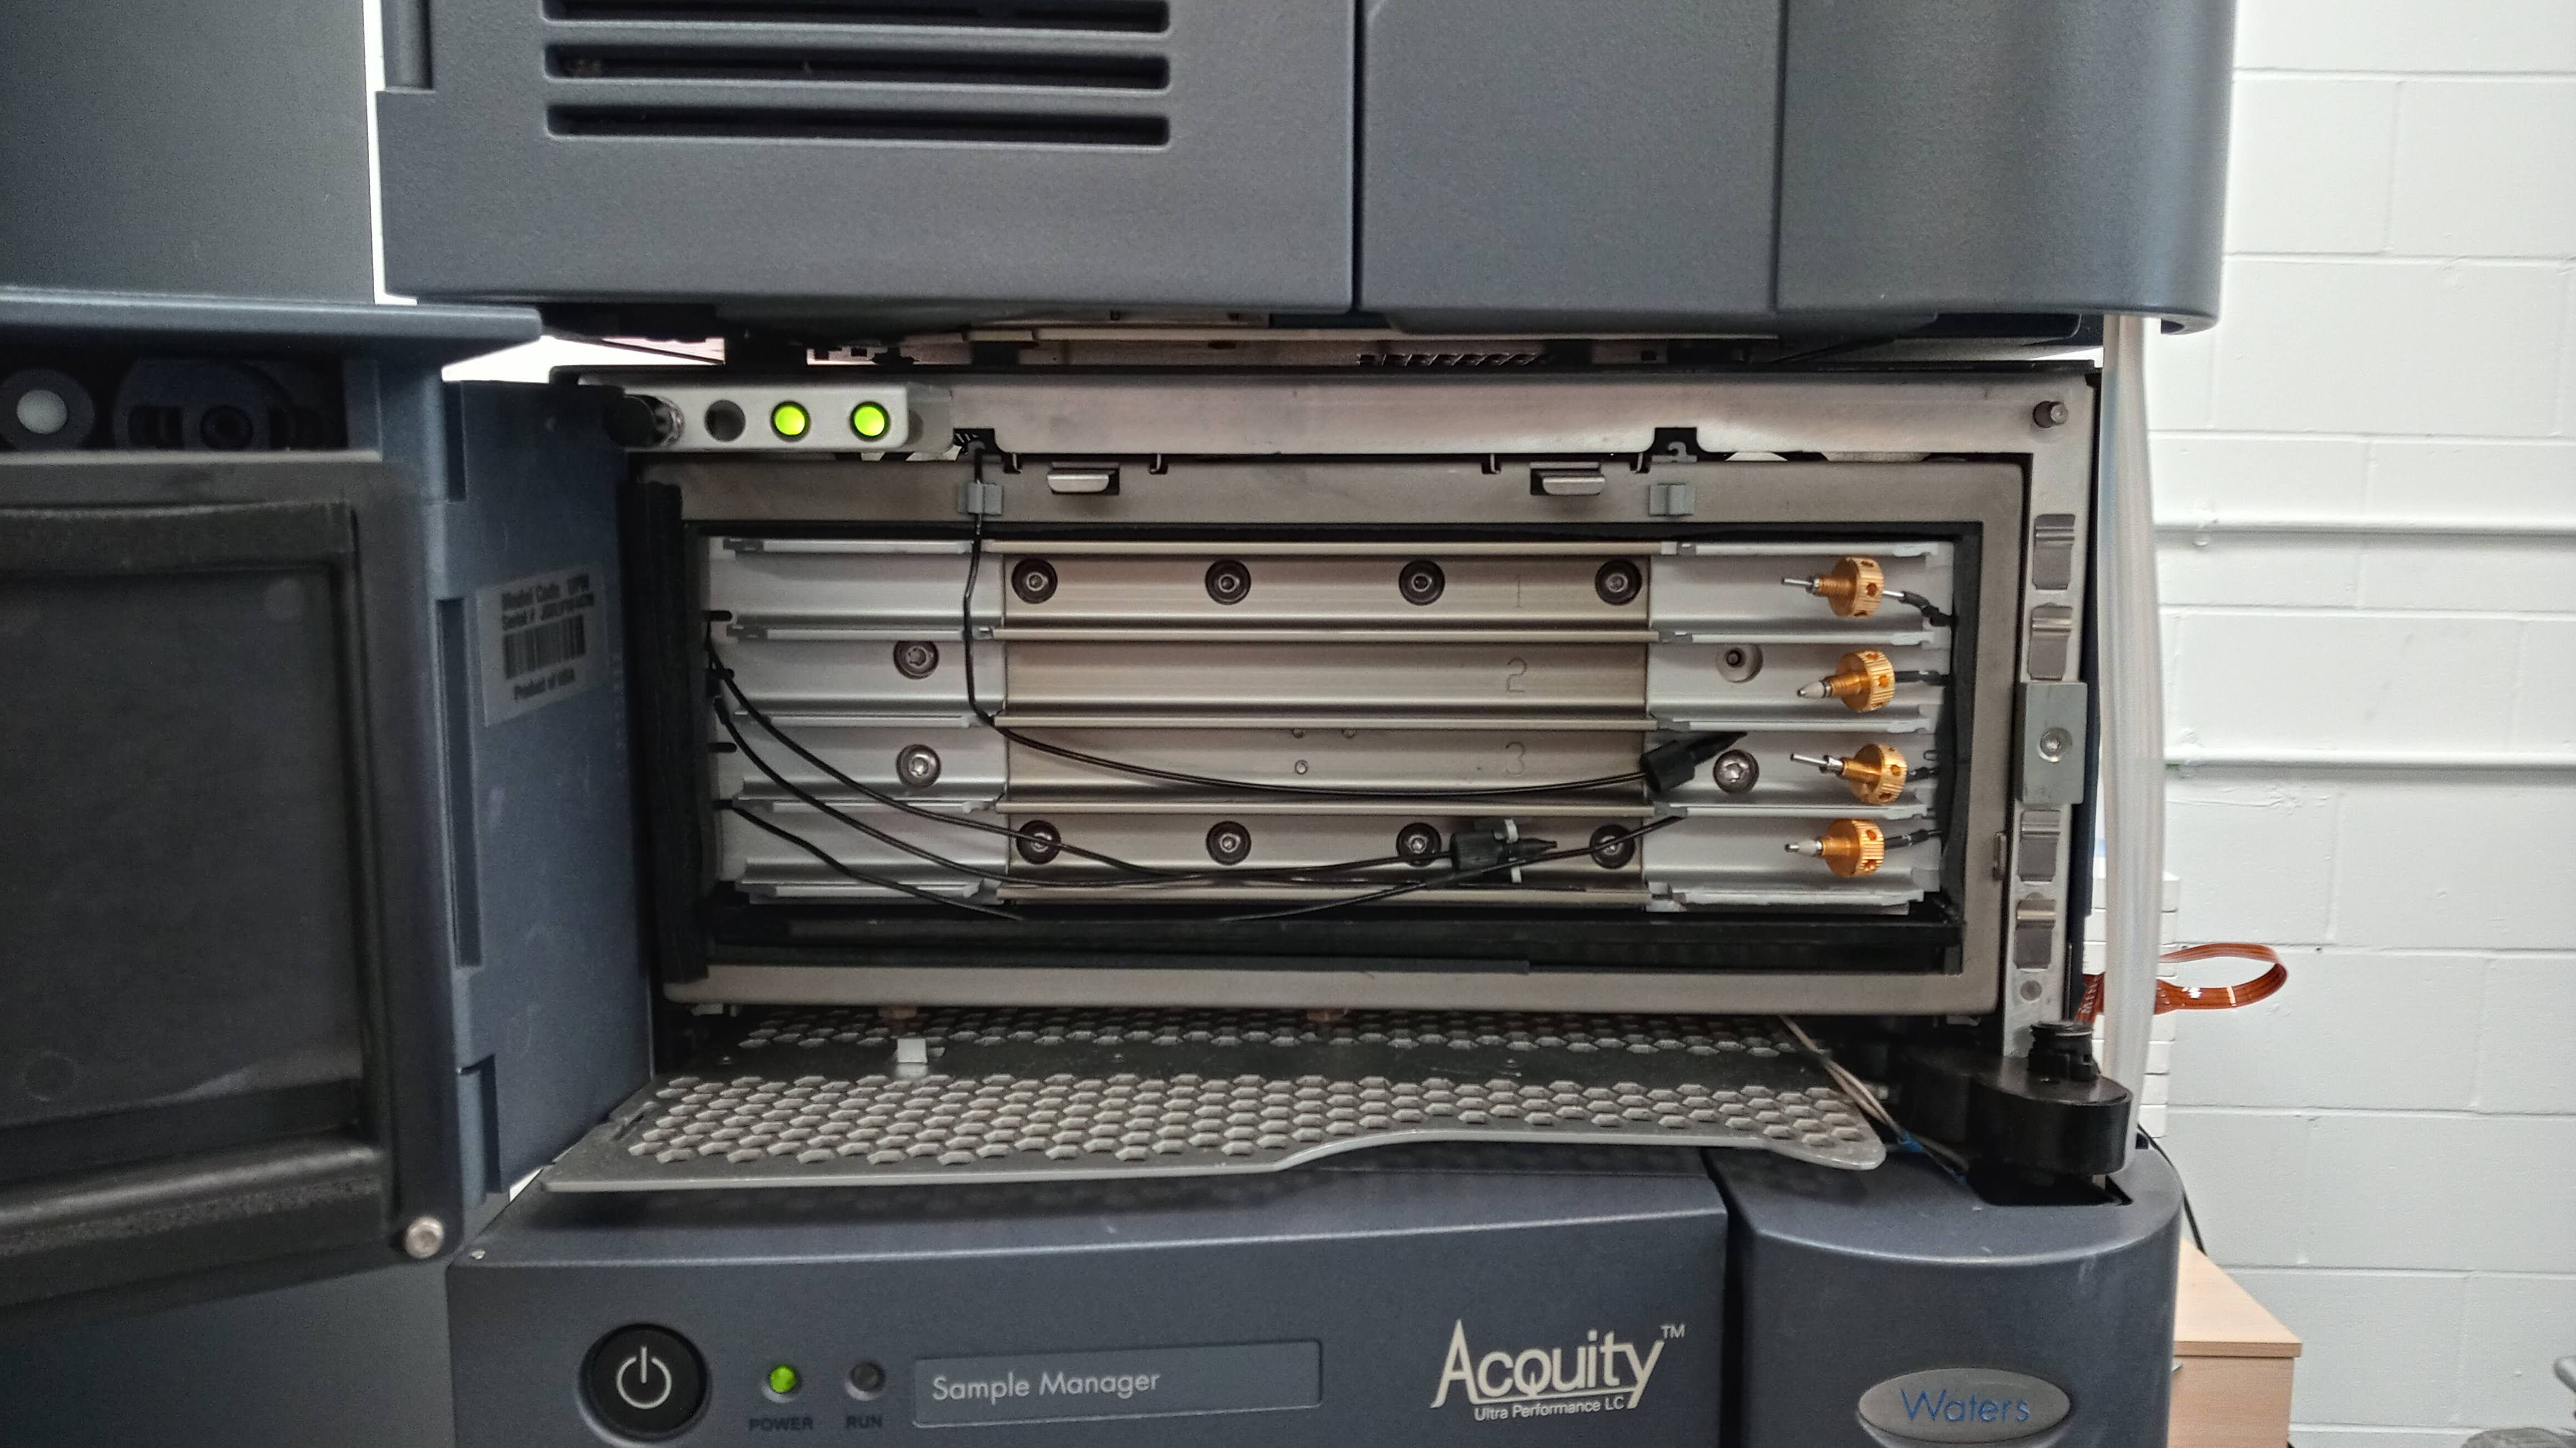 Waters Acquity Classic HPLC System with Software Package